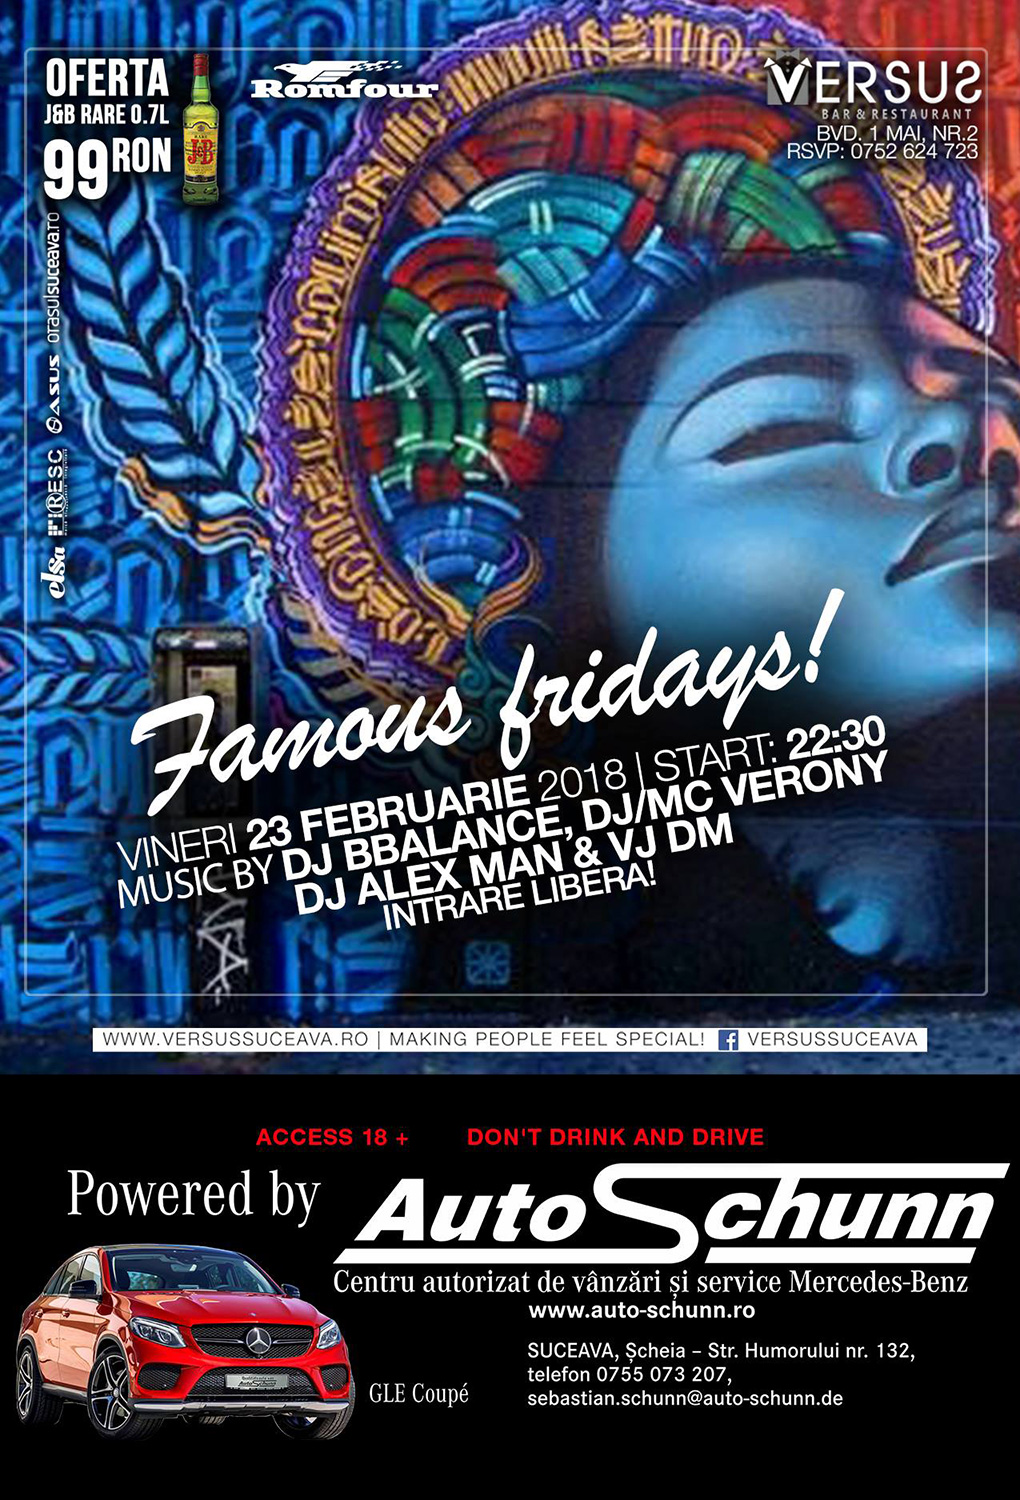 Famous fridays!